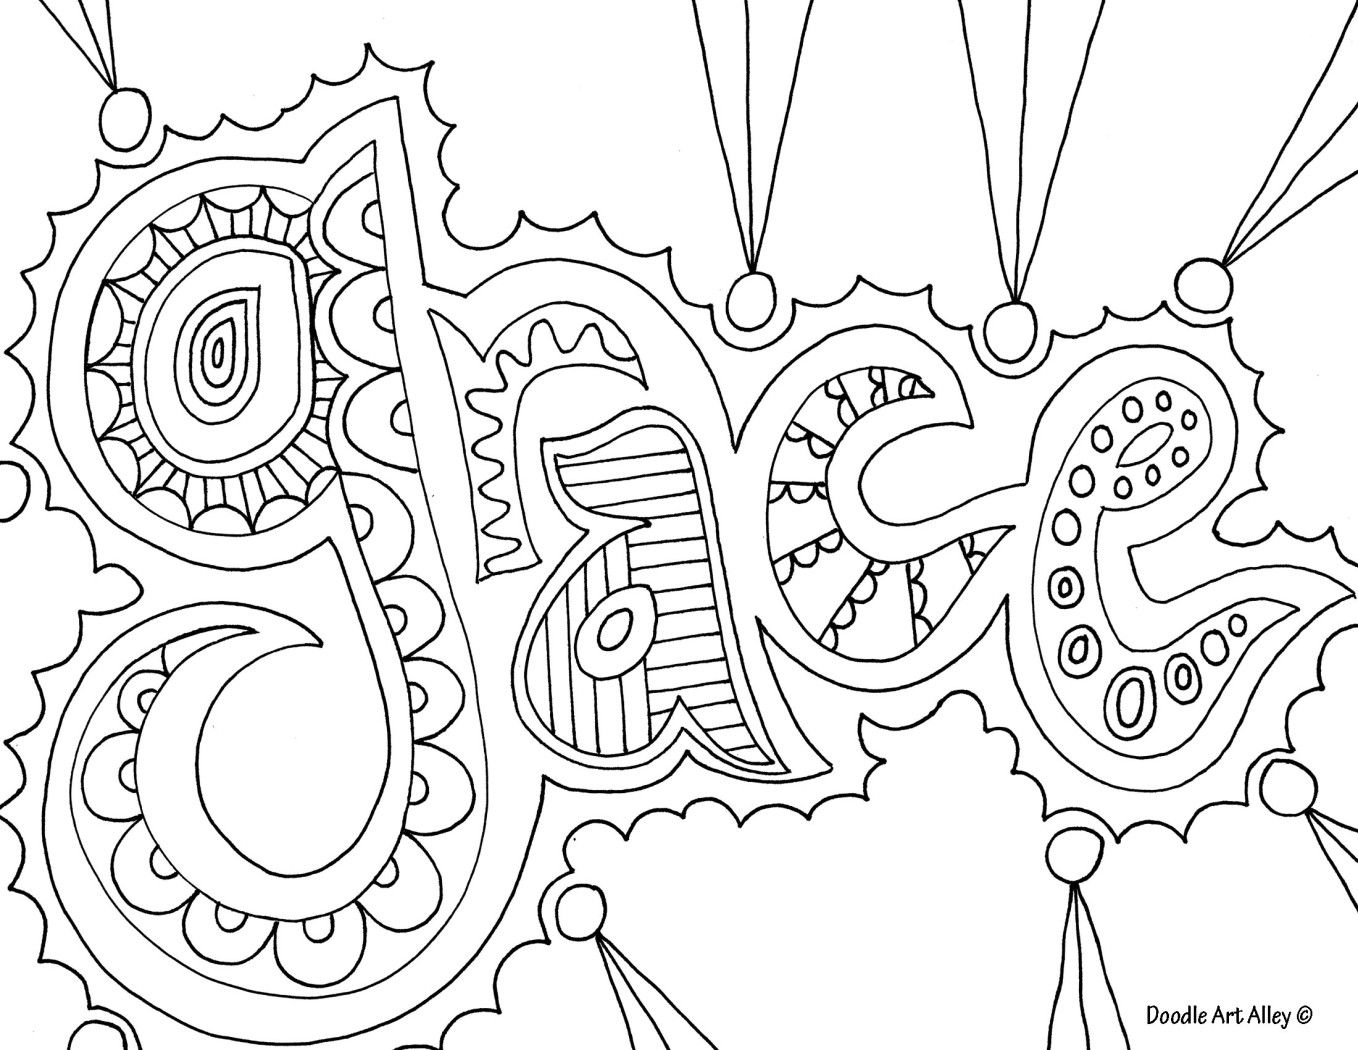 - Doodle Art Grace - Nice Coloring Page For Older Kids Christian